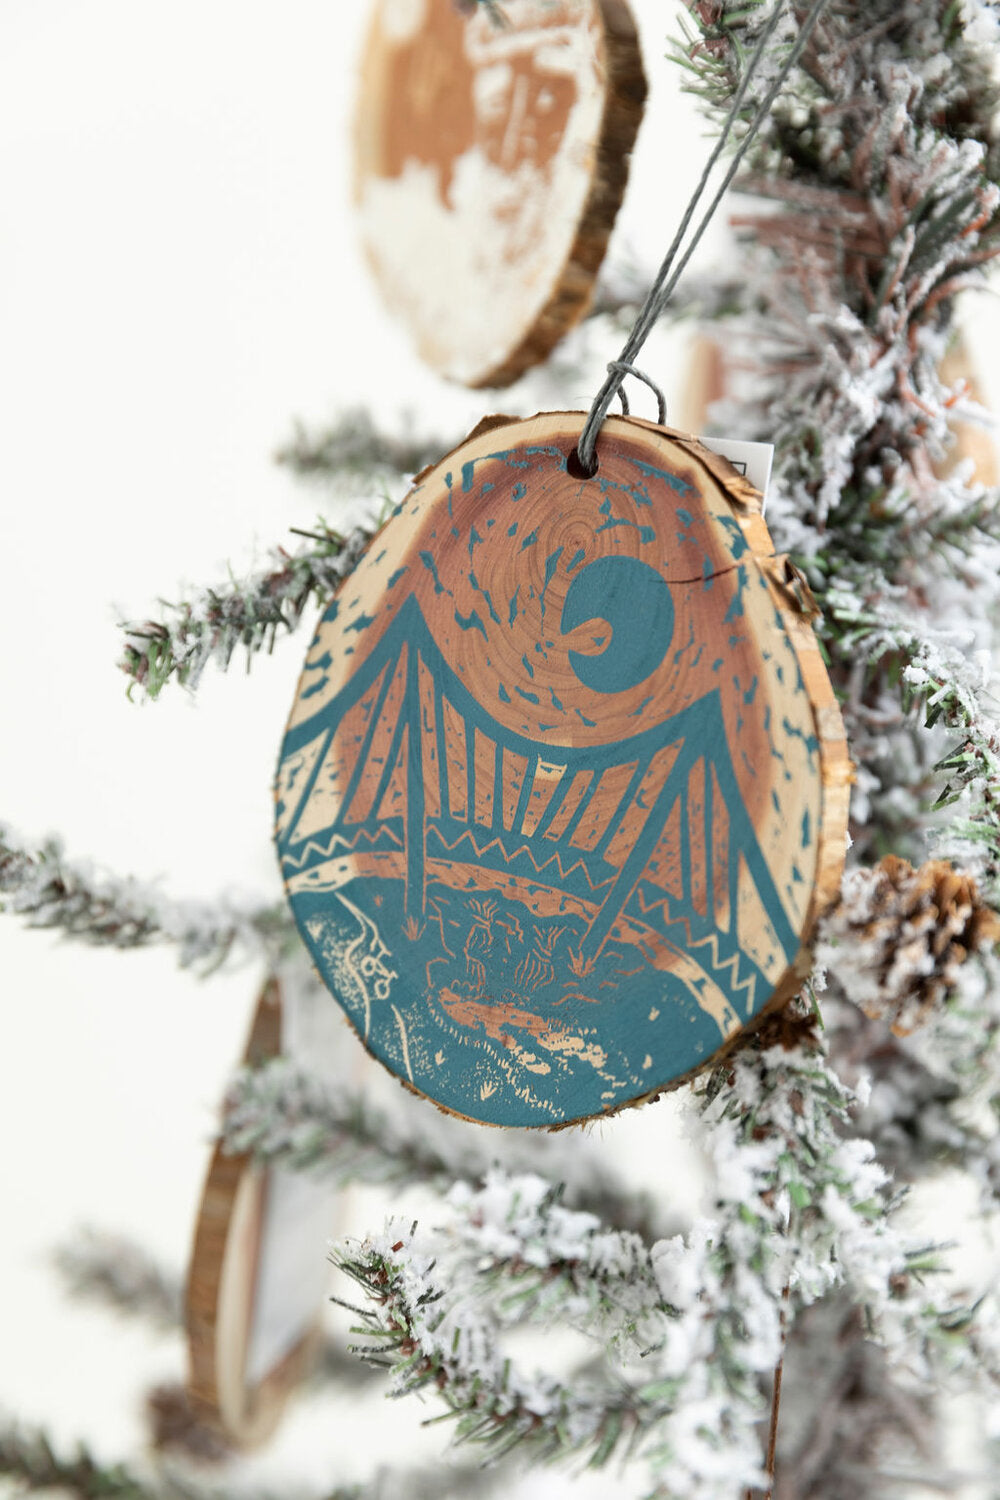 Falls Park Wooden Hand Printed Ornament